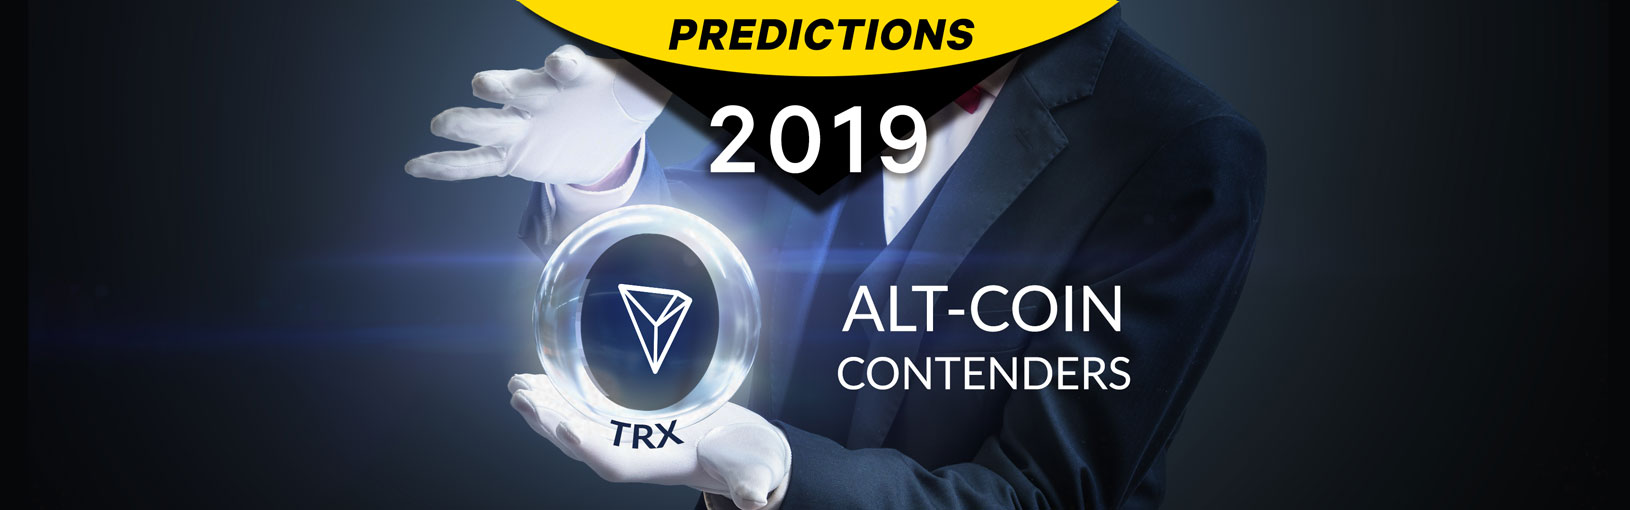 Crypto Predictions 2019: Alt-Coin Contenders — TRON » Brave